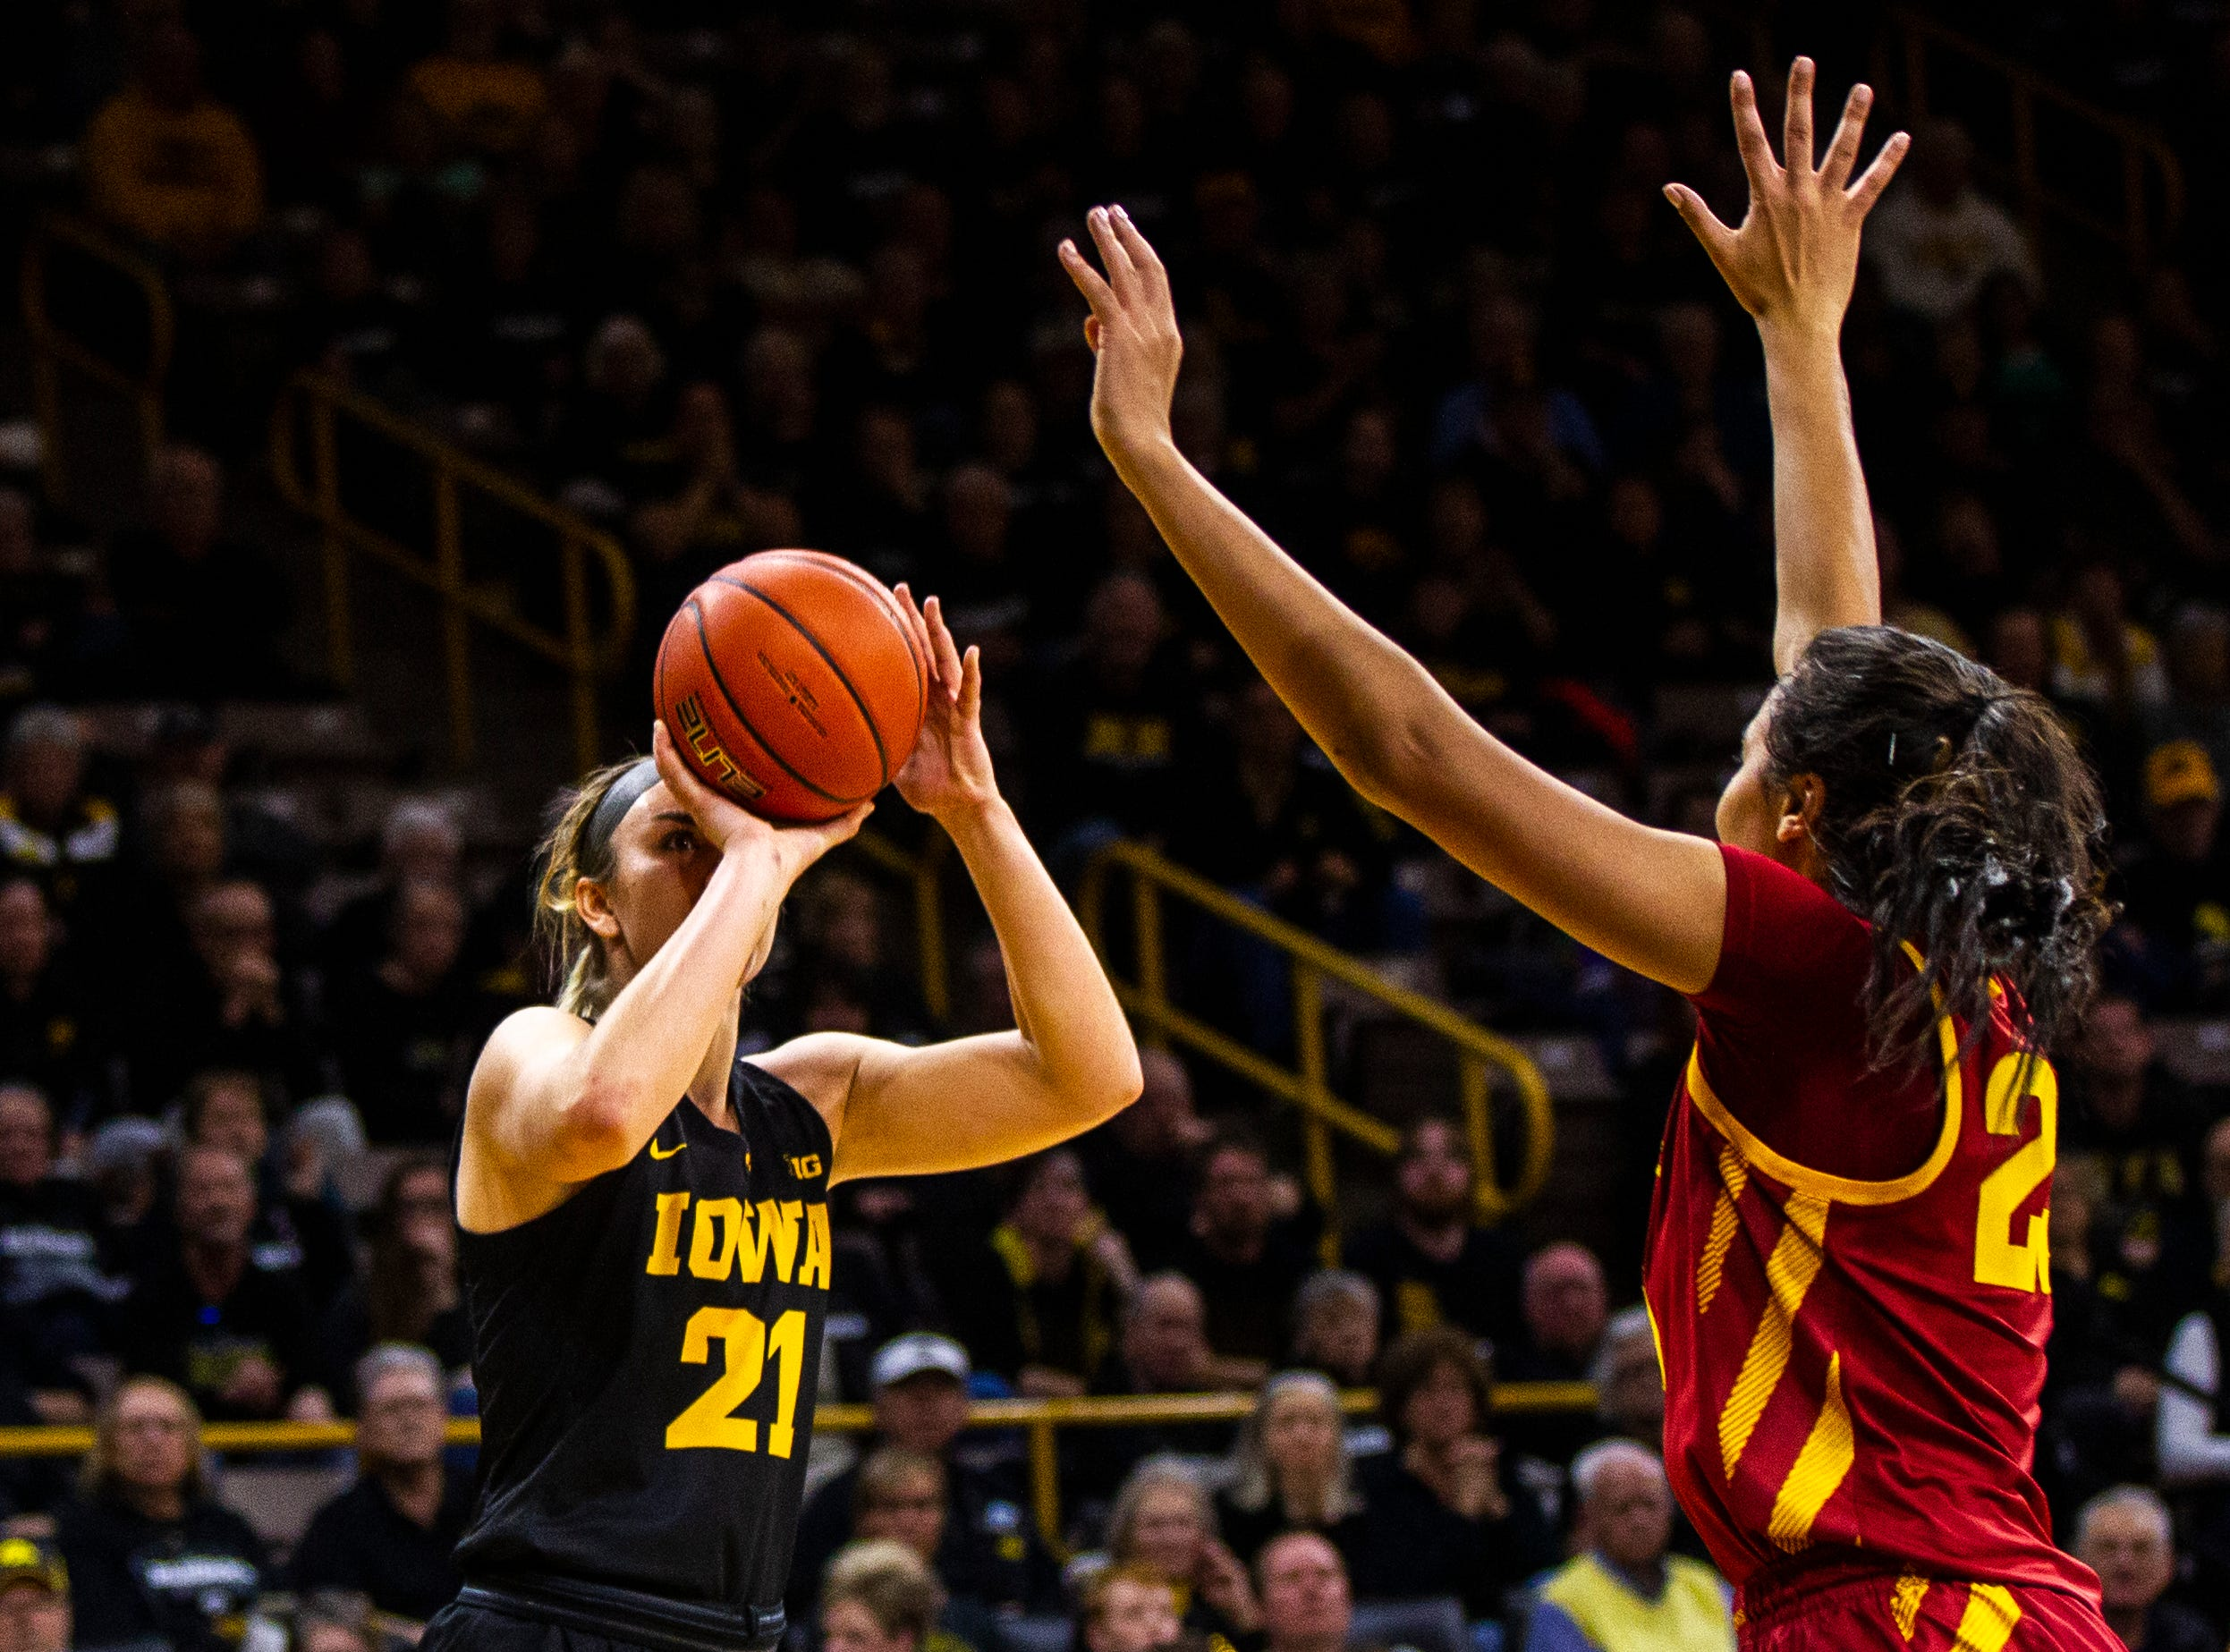 Iowa forward Hannah Stewart (21) attempts a basket during a Cy-Hawk series NCAA women's basketball game on Wednesday, Dec. 5, 2018, at Carver-Hawkeye Arena in Iowa City.